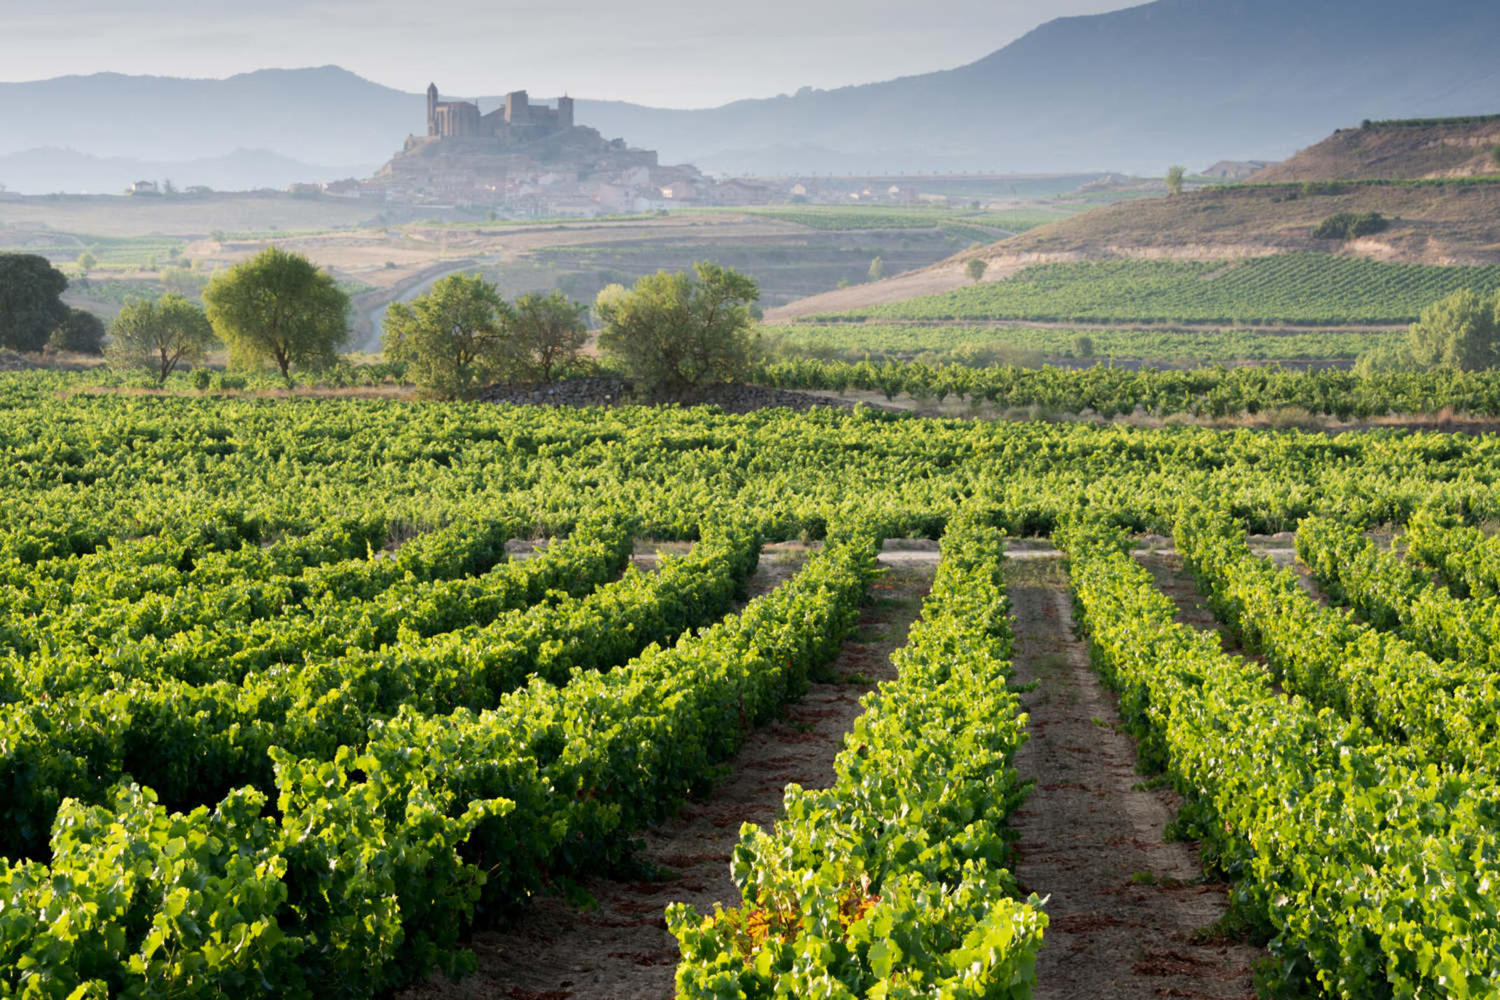 Vineyard and San Vicente de la Sonsierra as background